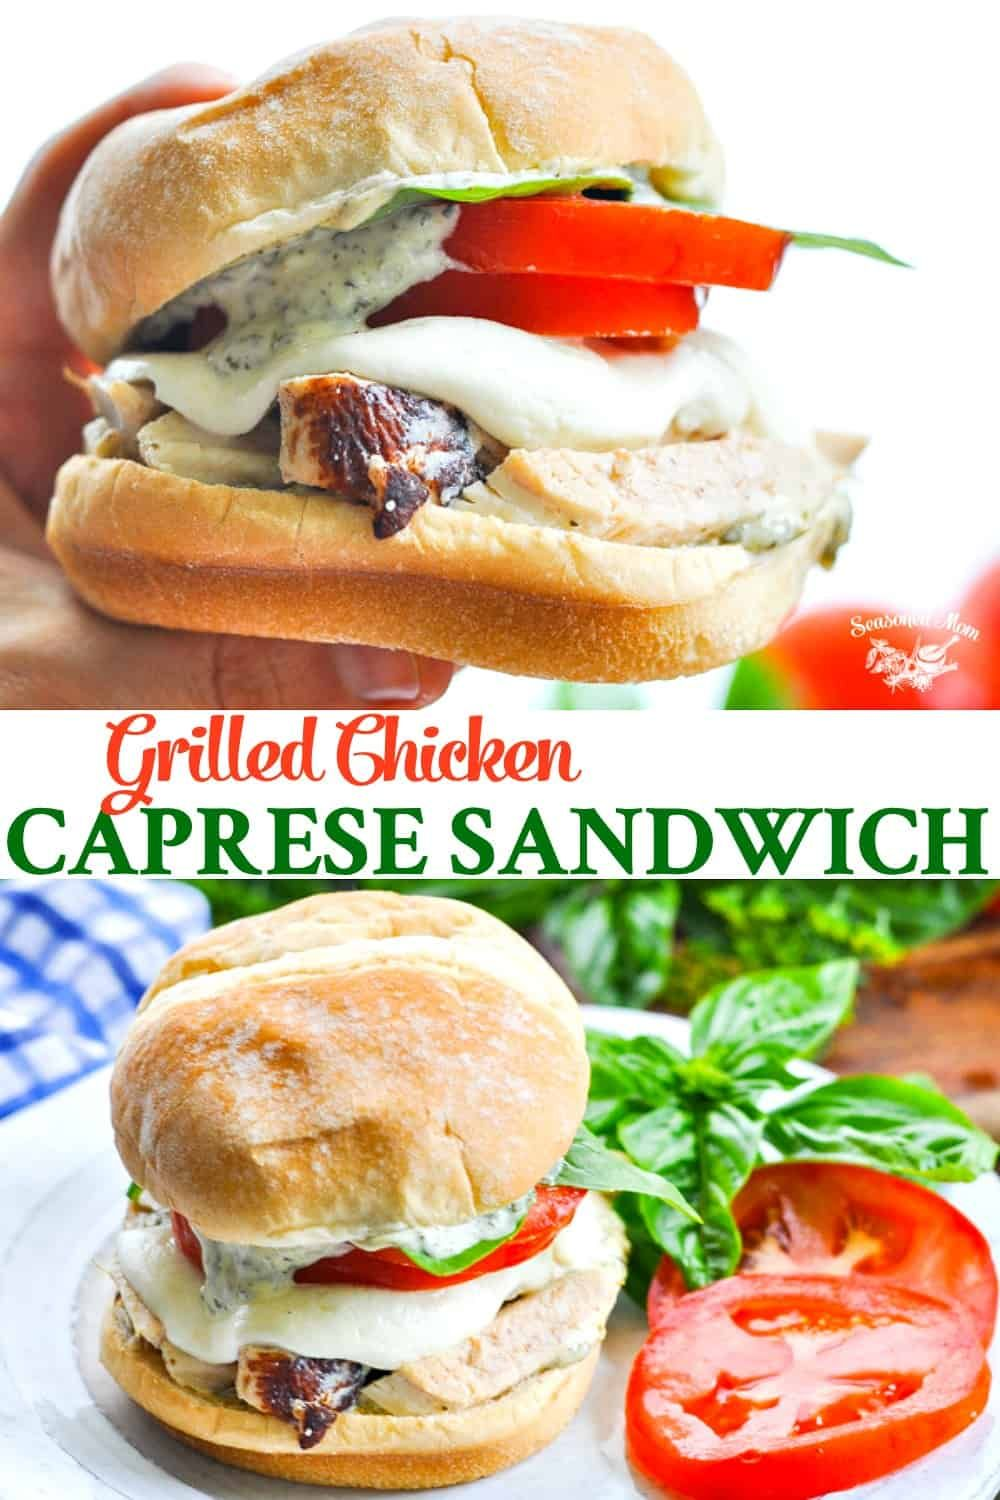 Grilled Chicken Caprese Sandwiches images